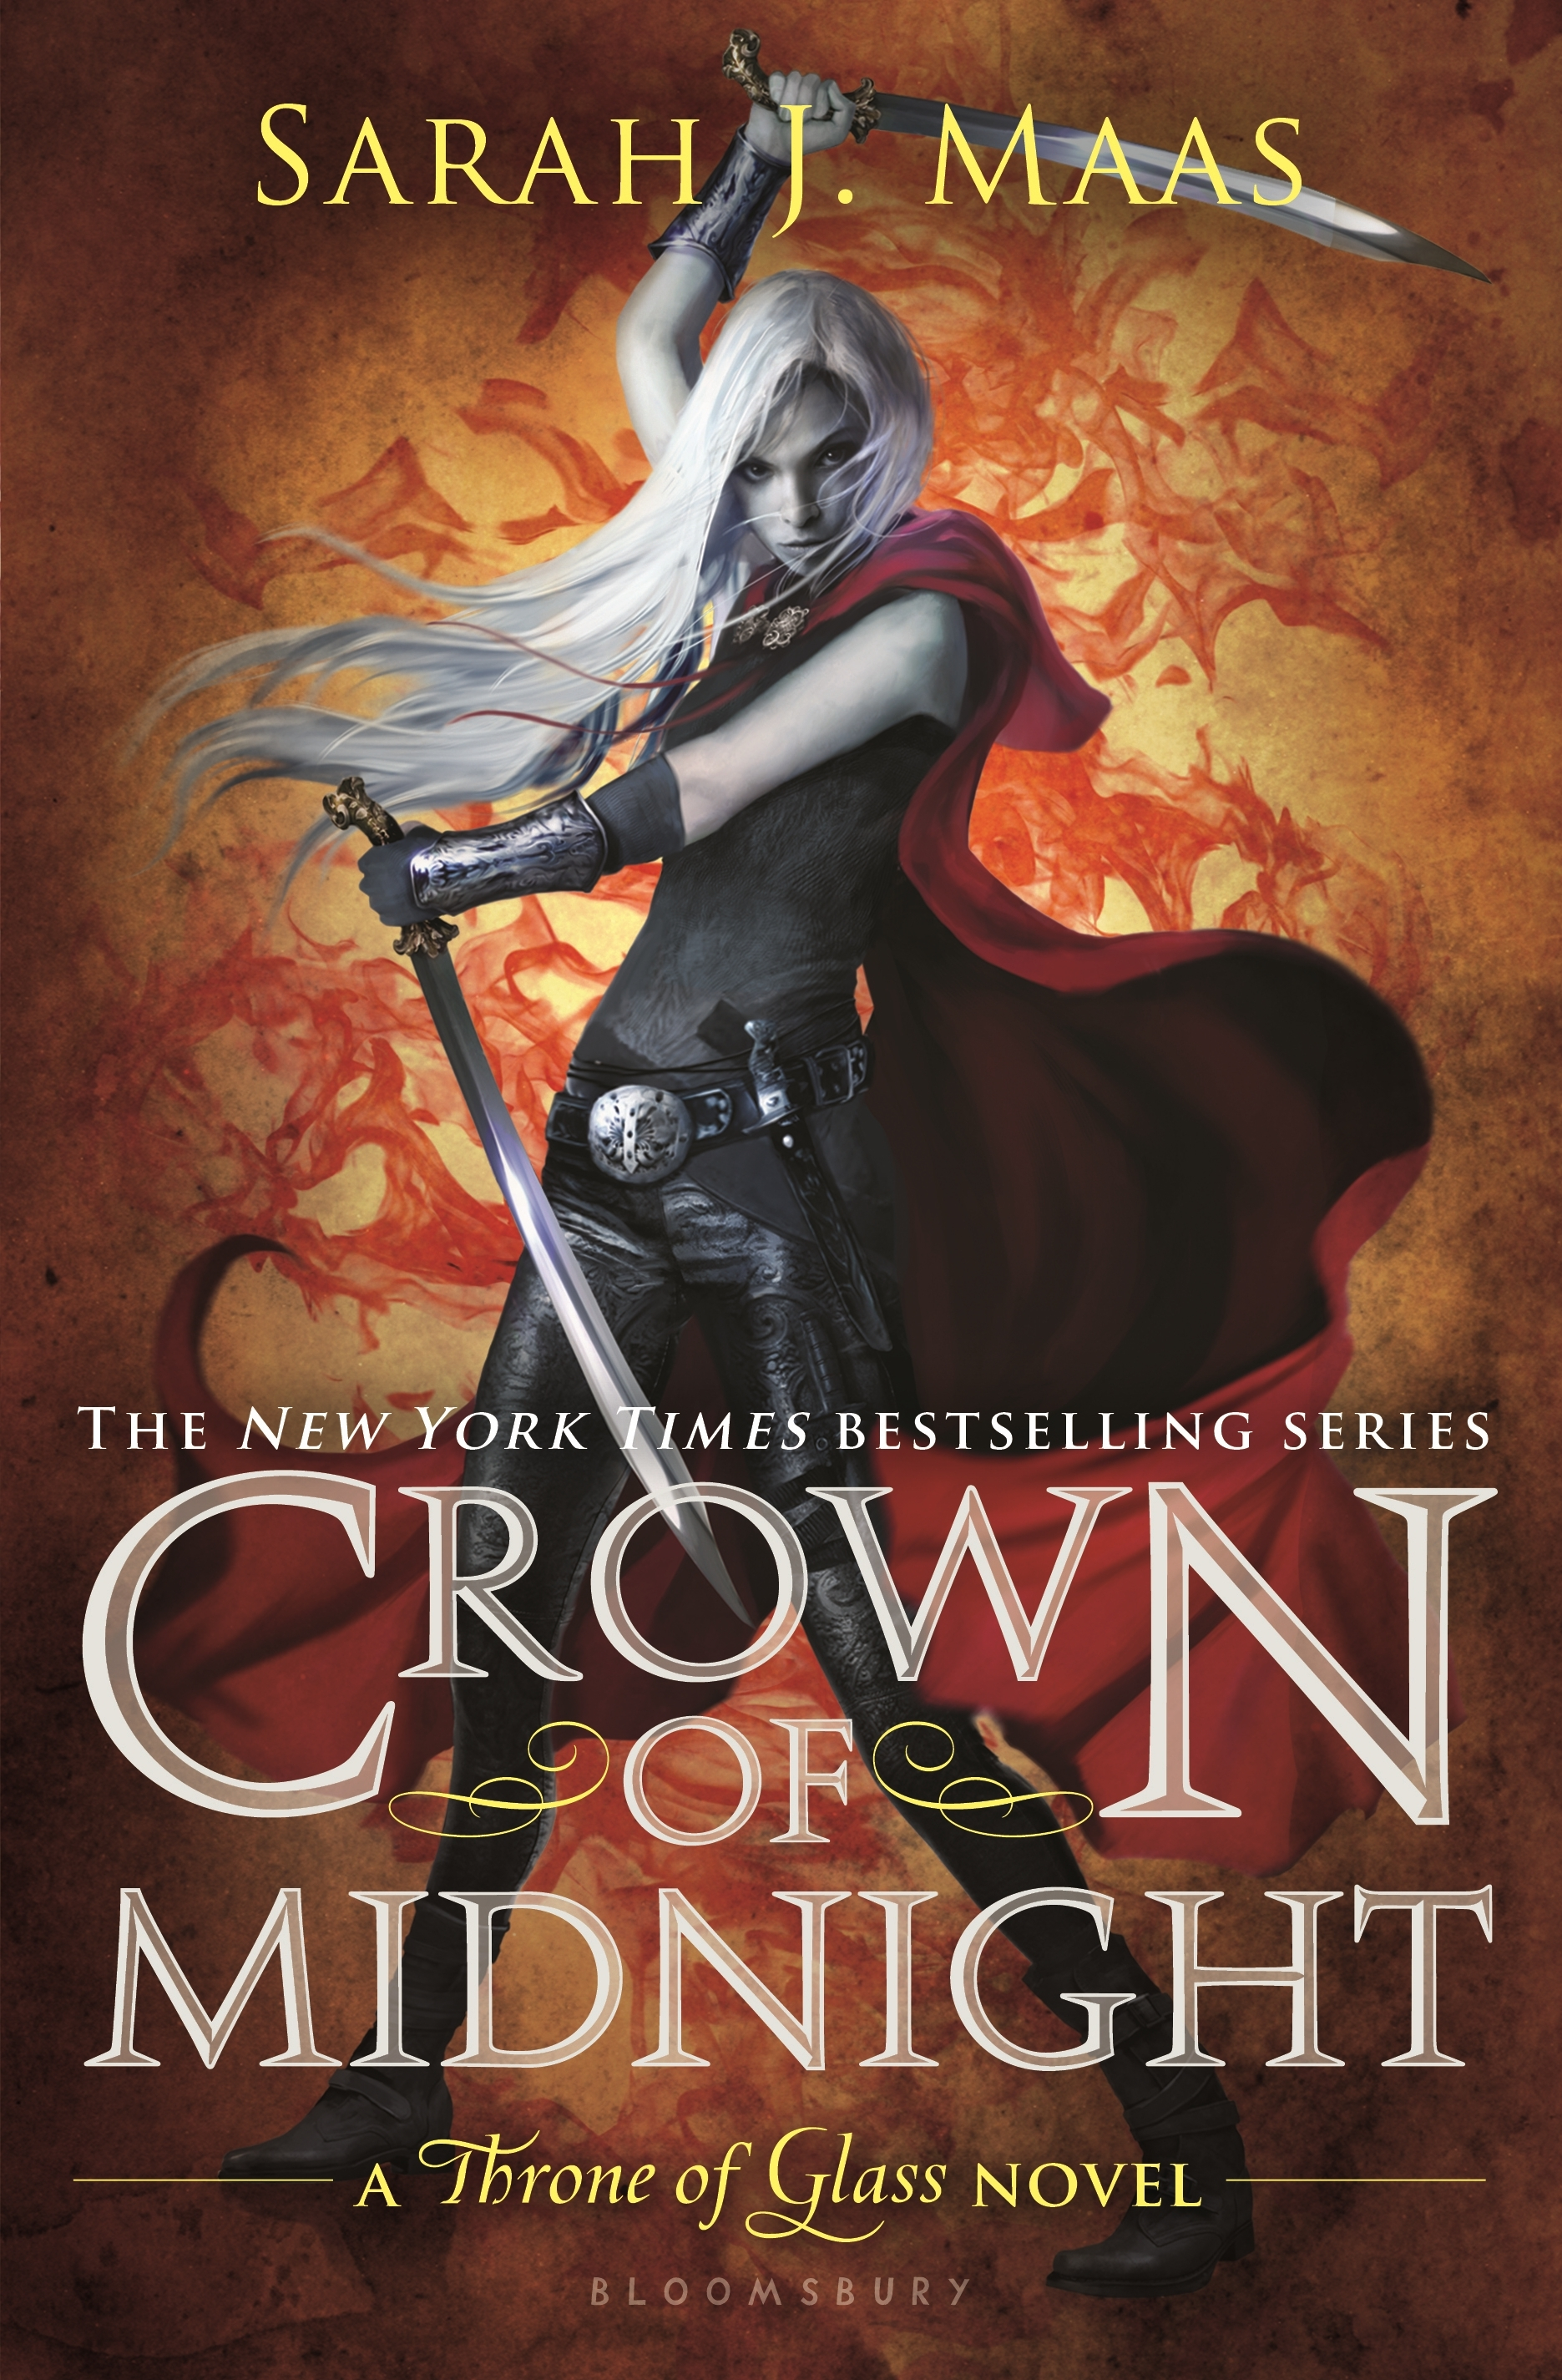 Sarah J Maas Is The #1 New York Times Bestselling Author Of The Throne Of  Glass Series And A Court Of Thorns And Roses Series, As Well As A Usa Today  And